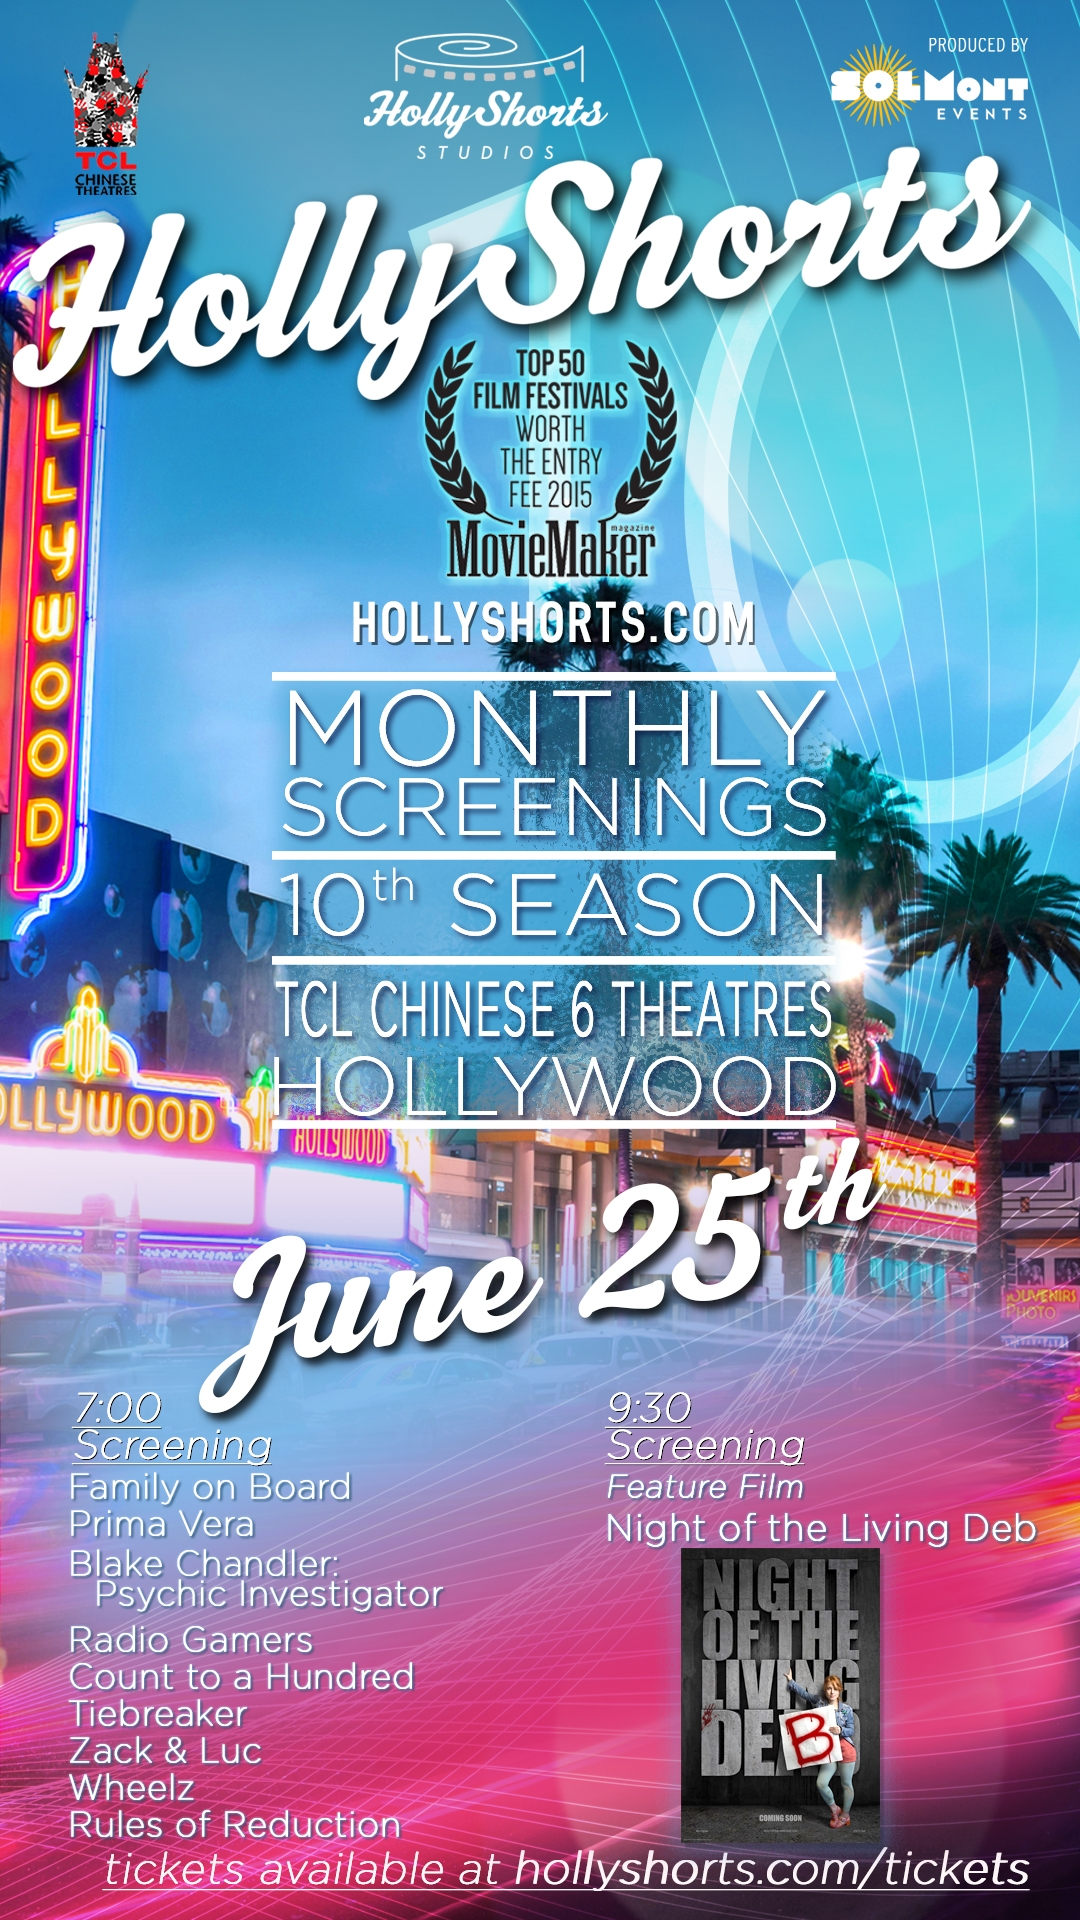 HollyShorts Monthly Screening Series Thu. June 25, 2015 7:00 PMHollyShorts Film Festival HollyShorts Monthly Screening series is an annual monthly film showcase highlighting various films from all genres. Now 10 years running and 8-9 screenings a year around the HollyShorts Film Festival in August. In Los Angeles, the screenings will take place at the TCL Chinese 6 Theatres.  6801 Hollywood Blvd 7:00PM Short Film Program:   Family On Board Prima Vera Blake Chandler Psychic Investigator Radio Gamers Count To A Hundred TIEBREAKER Zack & Luc Wheelz Rules of Reduction HollyShorts Monthly Screening series is an annual monthly film showcase highlighting various films from all genres. Now 10 years running and 8-9 screenings a year around the HollyShorts Film Festival in August. In Los Angeles, the screenings will take place at the TCL Chinese 6 Theatres.  6801 Hollywood Blvd 9:30pm Feature film presentation: NIGHT OF THE LIVING DEB Synopsis:  After a girls' night out, endearingly awkward Deb wakes up in the apartment of the most attractive guy in Portland, Maine.  She's thrilled, but she can't remember much of what got her there.  Pretty boy Ryan only knows it was a mistake and ushers her out the door… into a full-scale zombie apocalypse. Now, a walk of shame becomes a fight for survival as the mismatched pair discovers that the only thing scarier than trusting someone with your life… is trusting them with your heart.